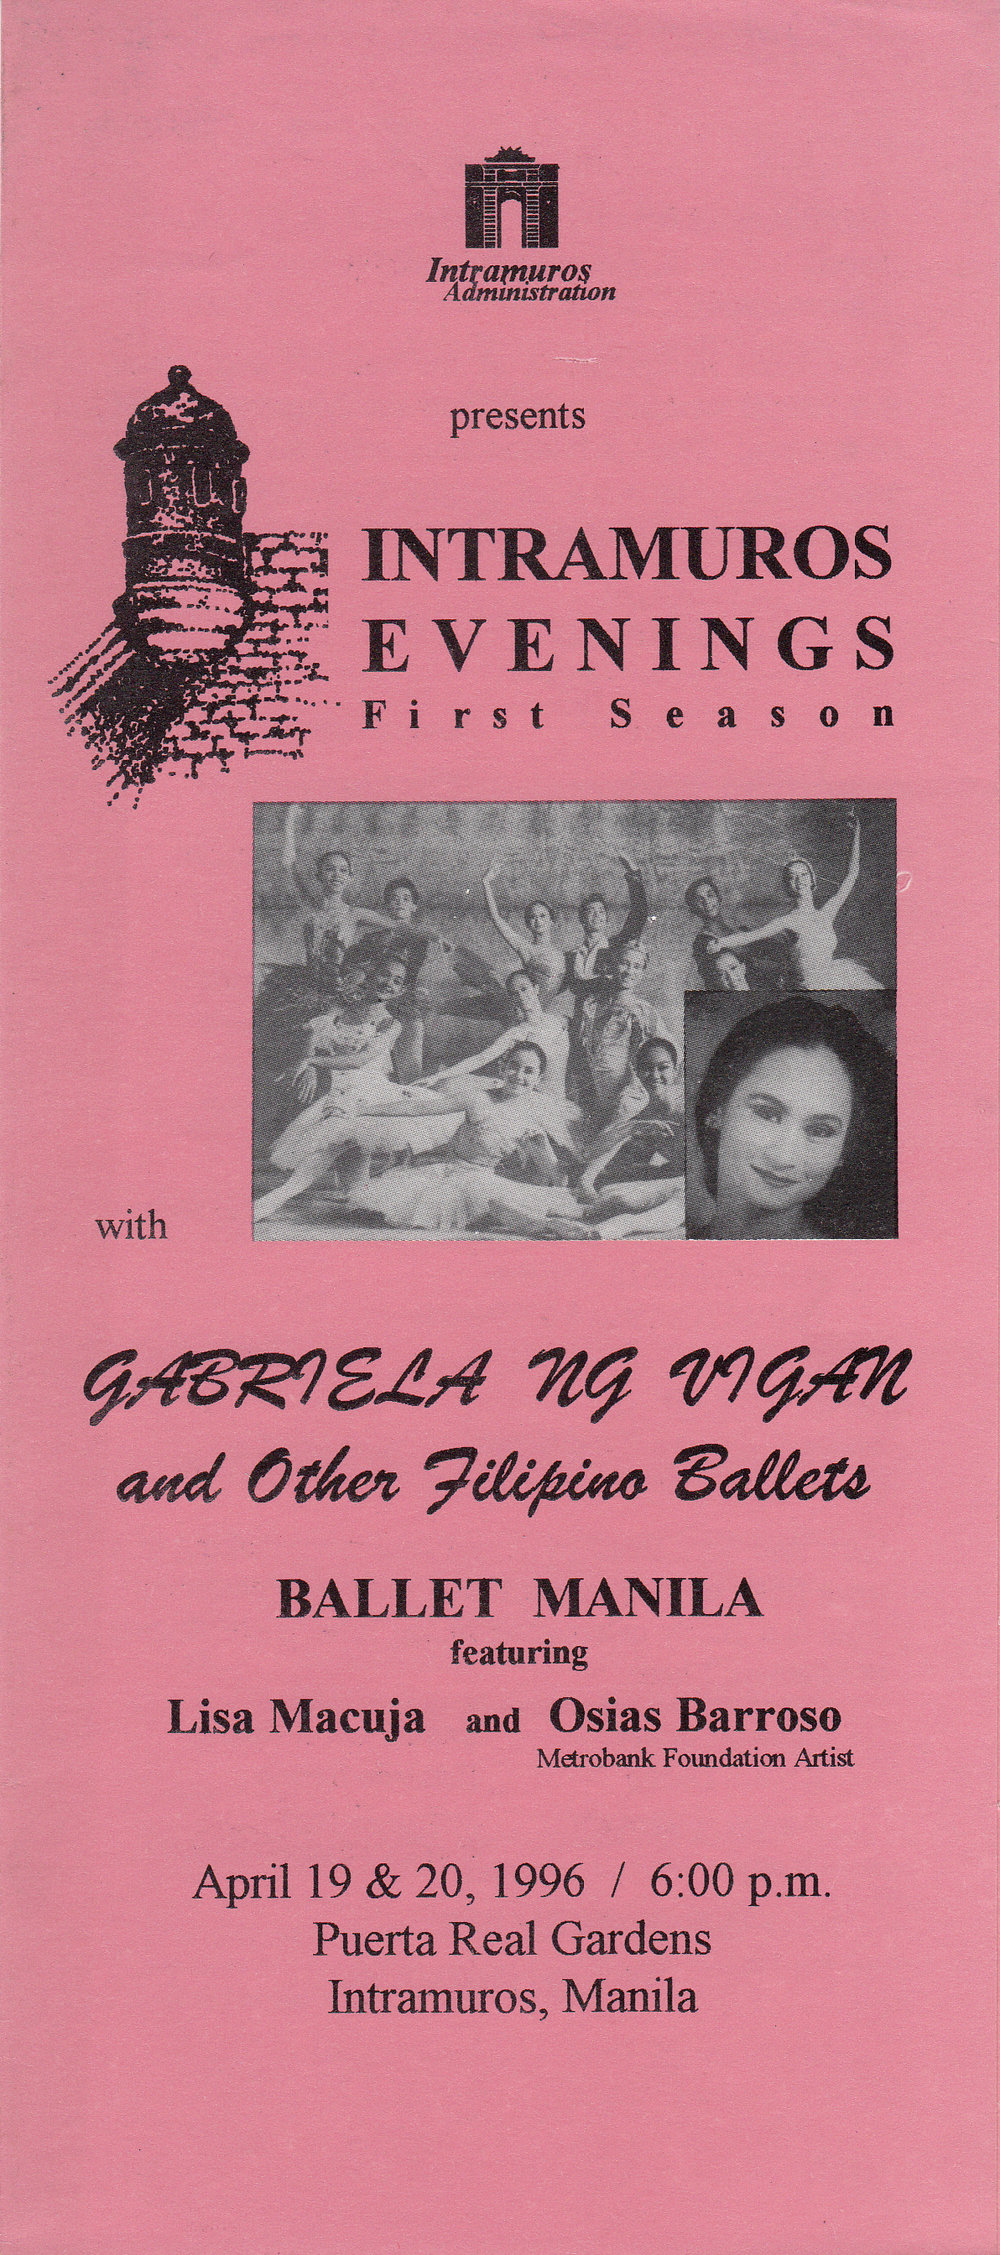 The souvenir program of    Gabriela ng Vigan   , which had its world premiere in April 1996 in Intramuros